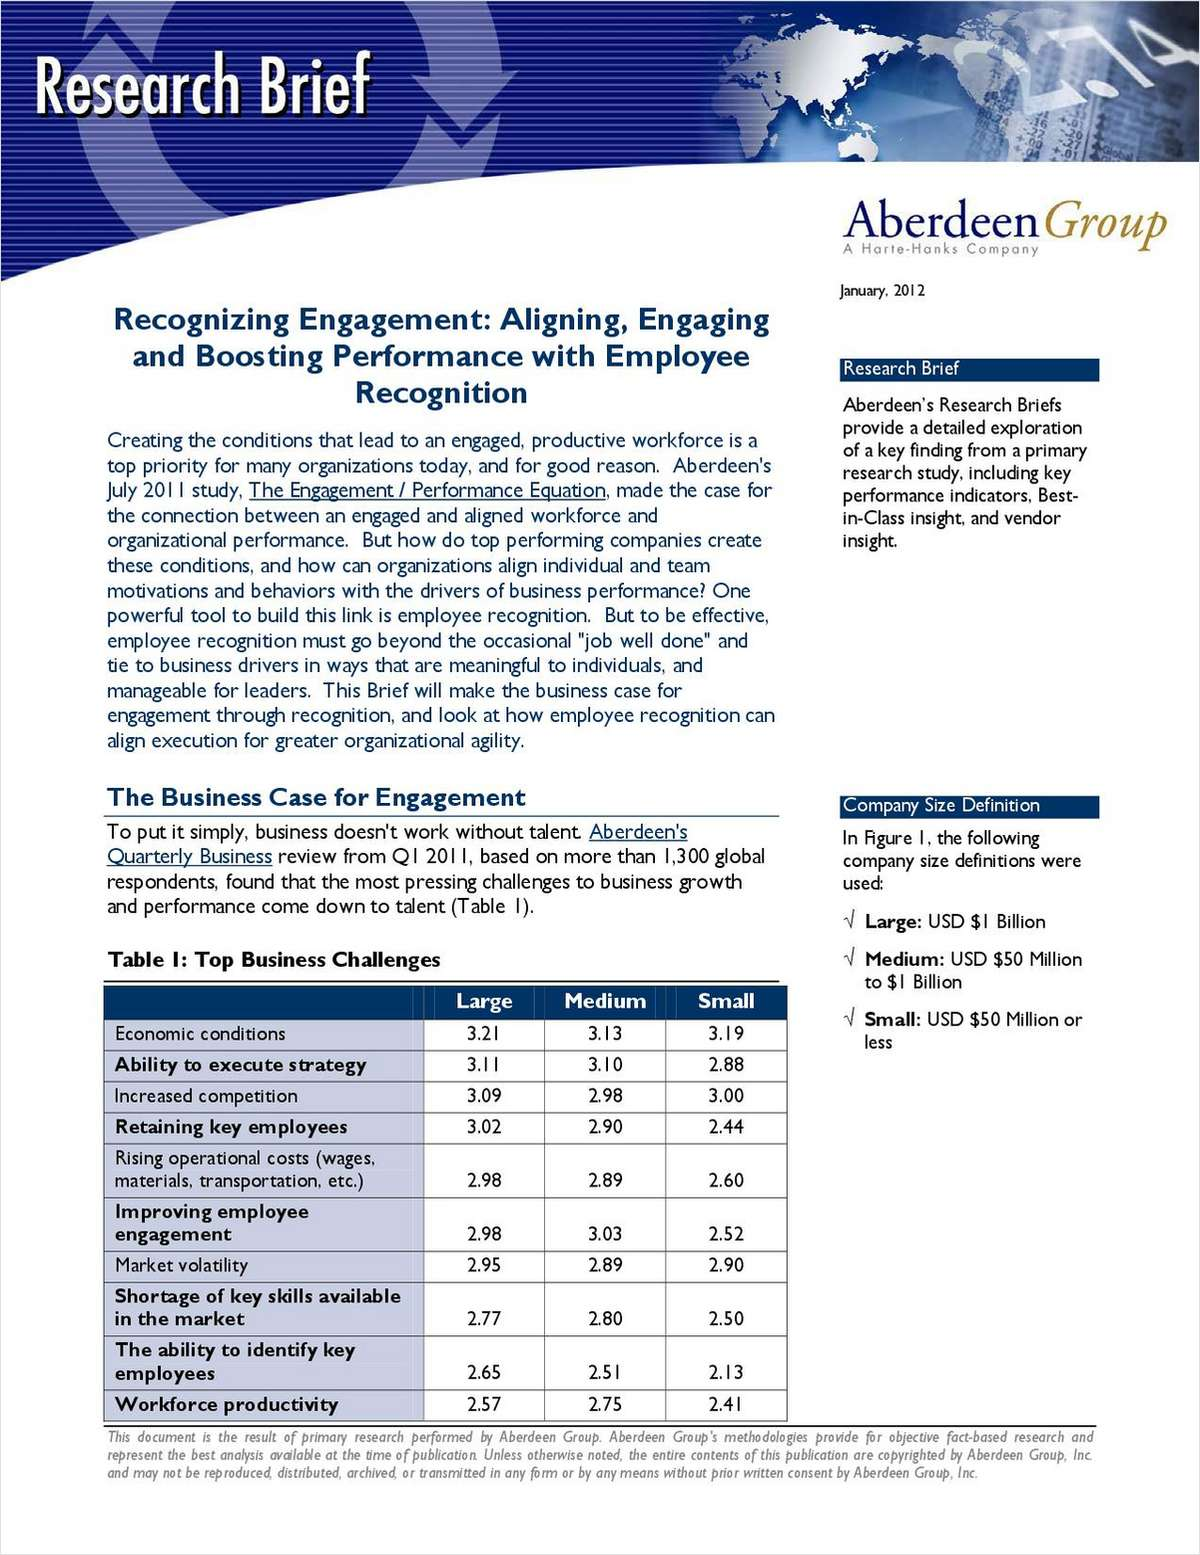 Aberdeen Report: 3 Proven Ways to Boost Employee Performance